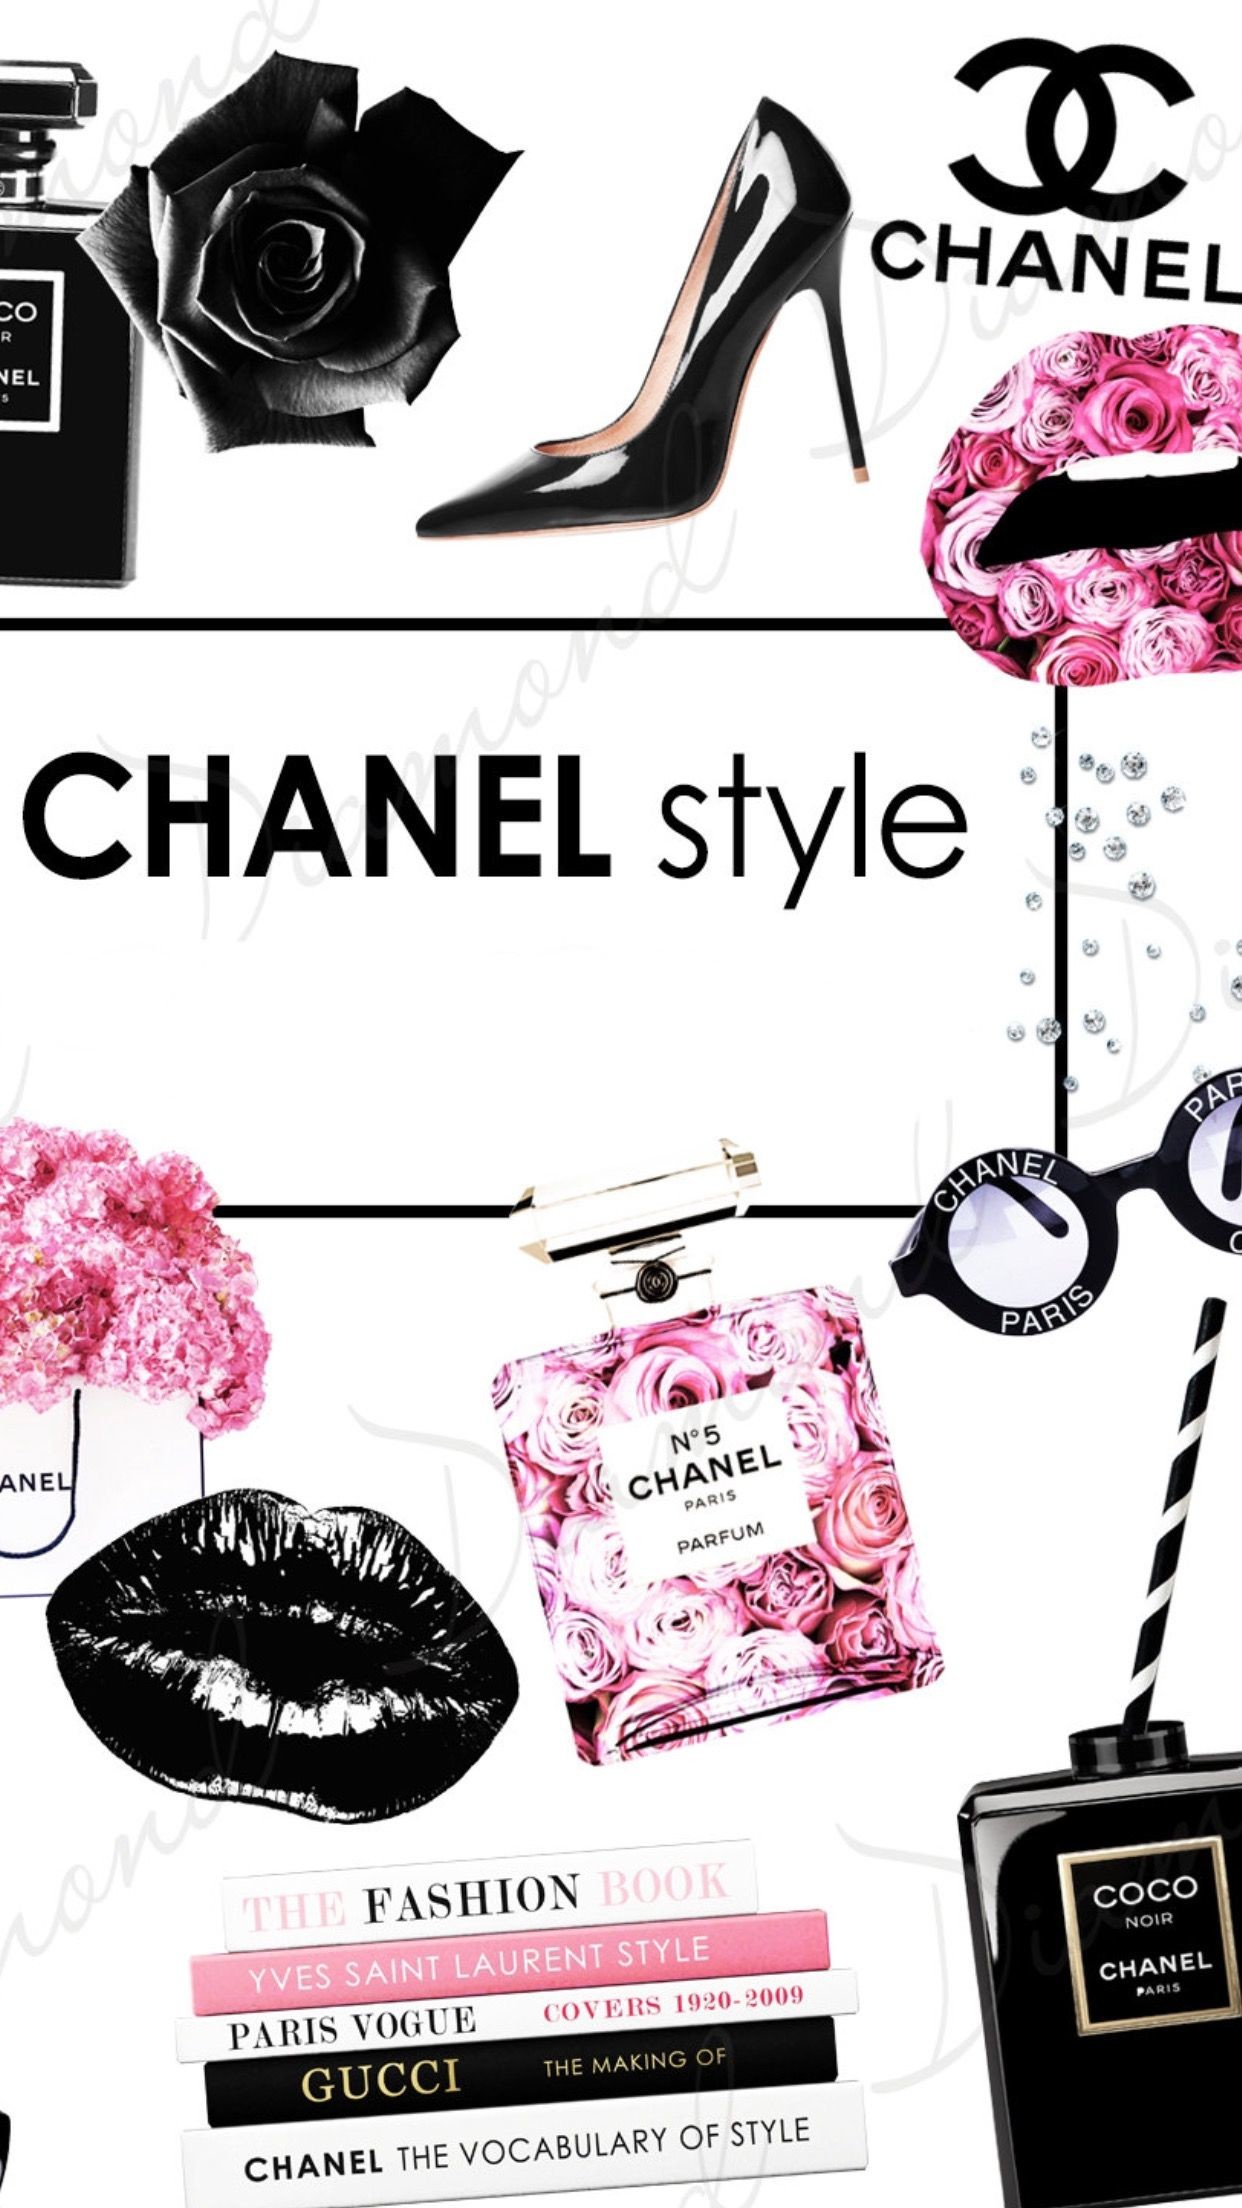 Wallpaper Chanel Posted By Zoey Mercado